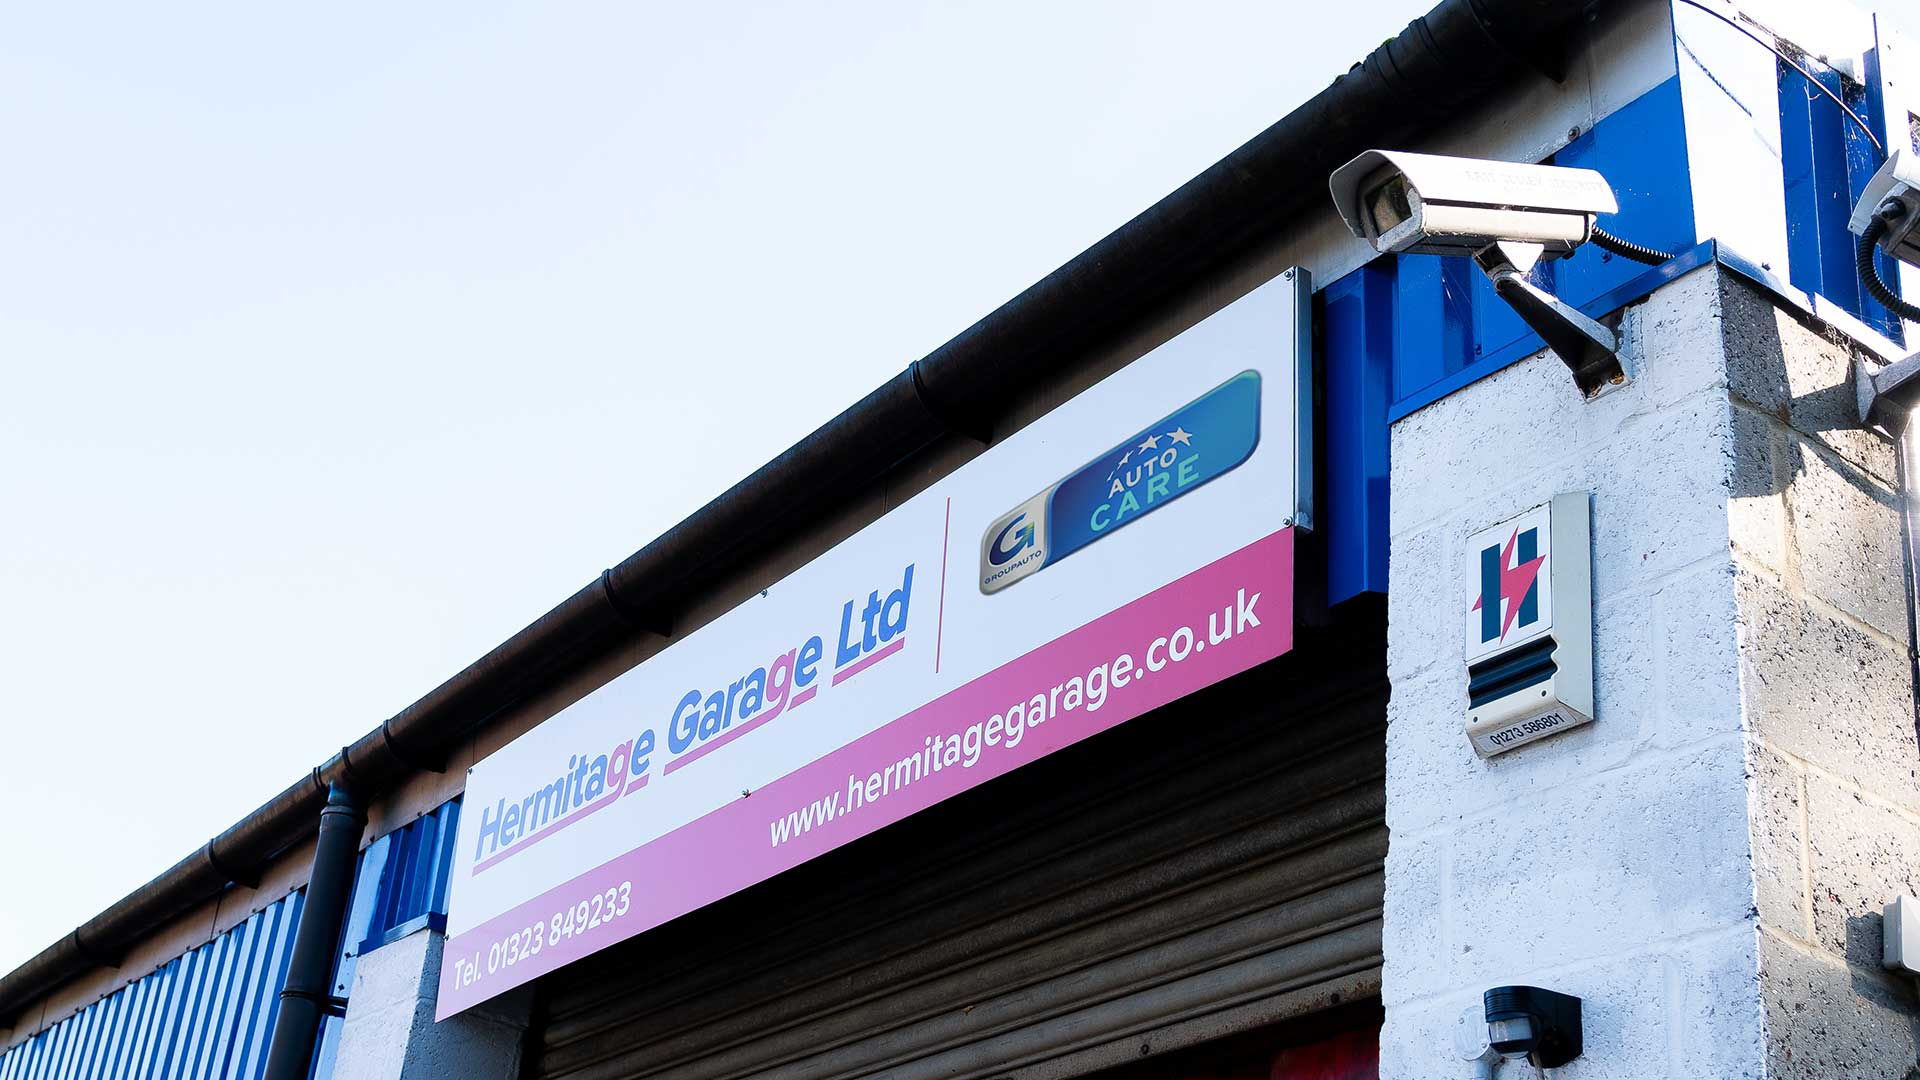 Photo of the exterior of Hermitage Garage